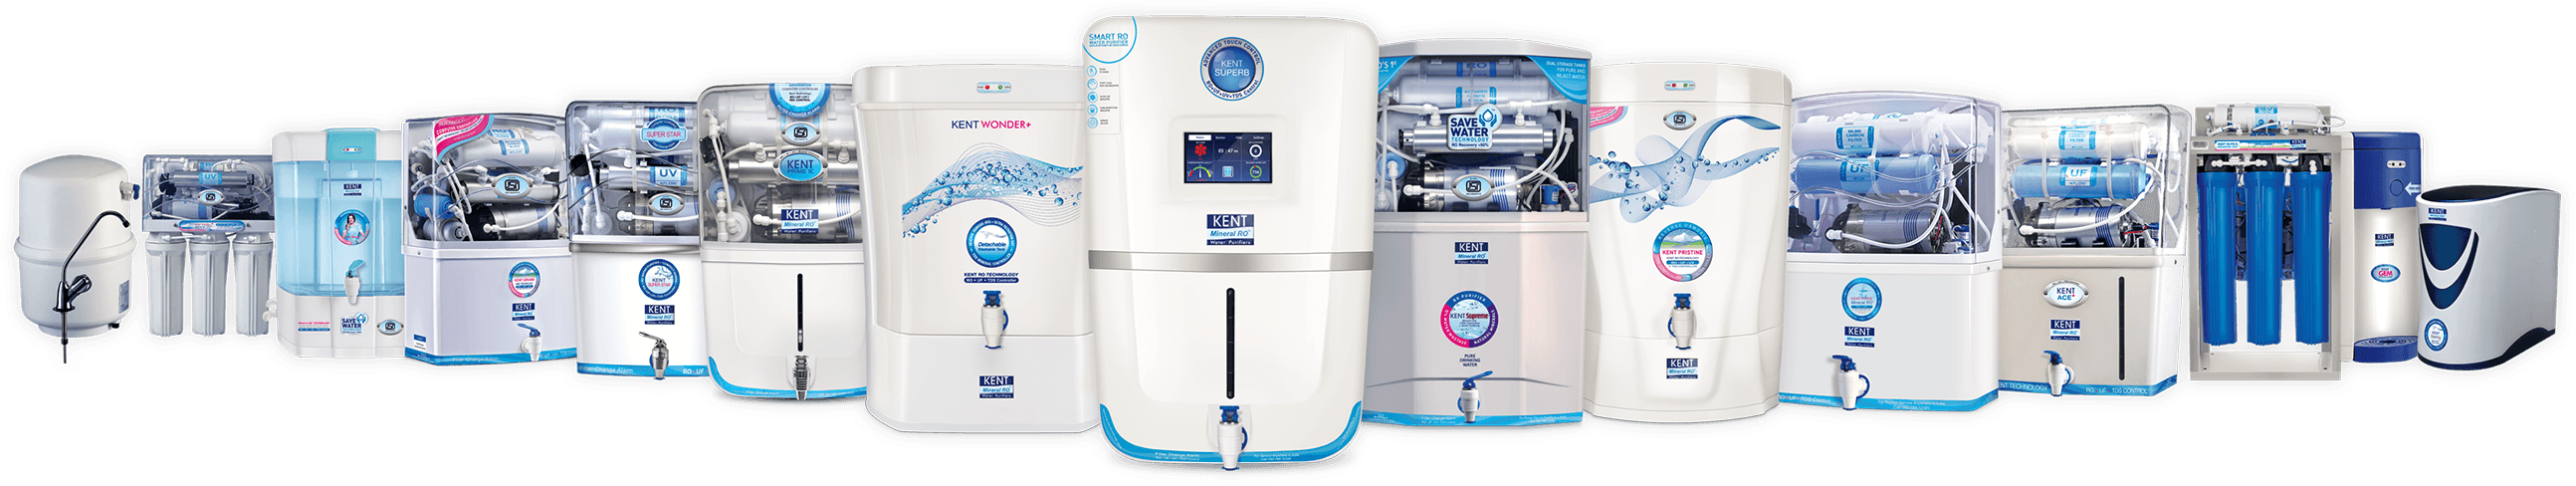 kent ro water purifier all models for UAE